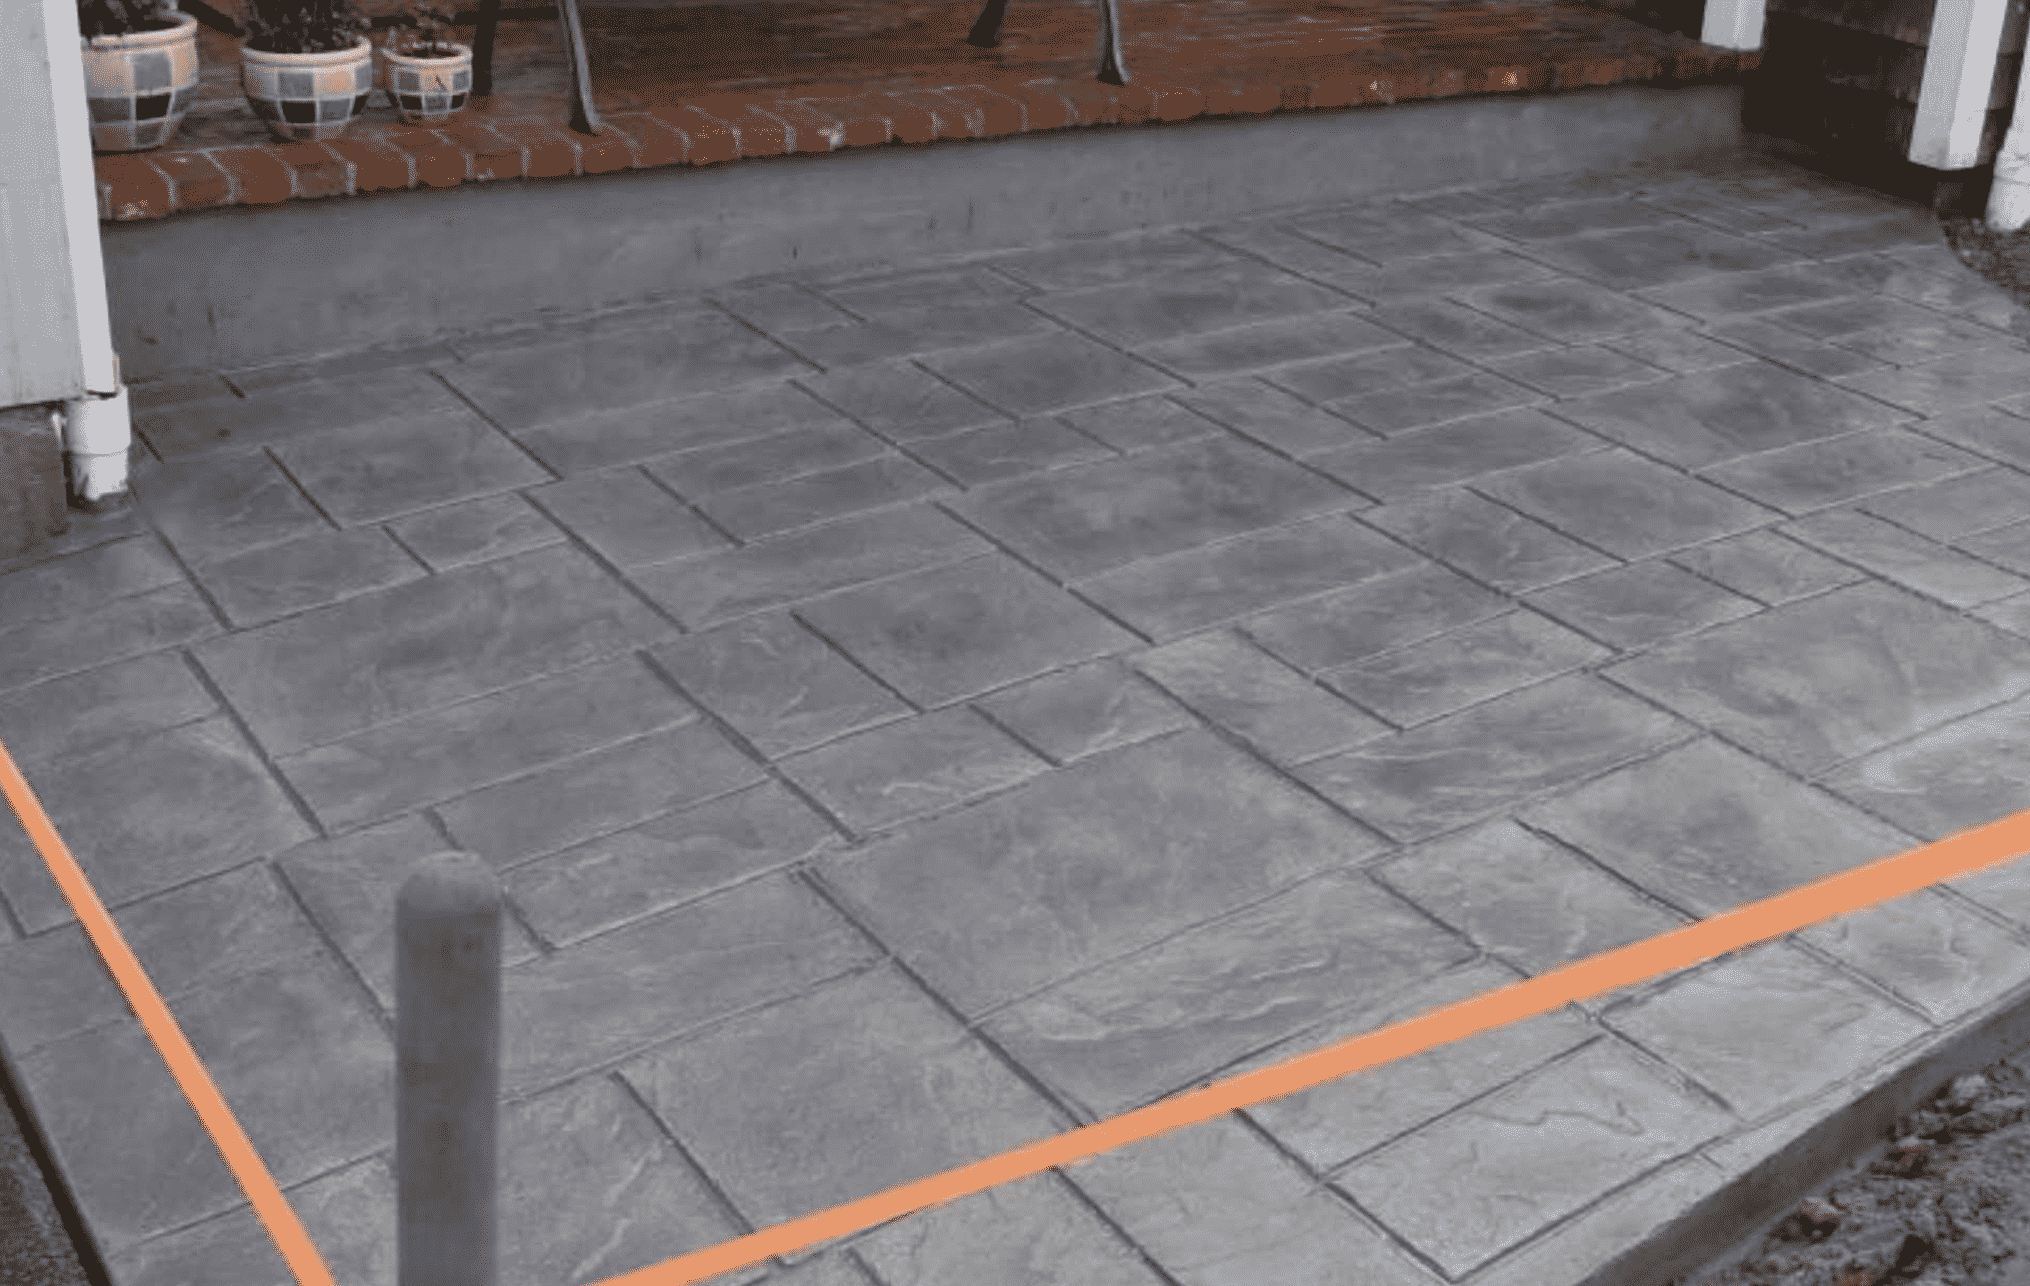 Concrete Patio and Orange Tape